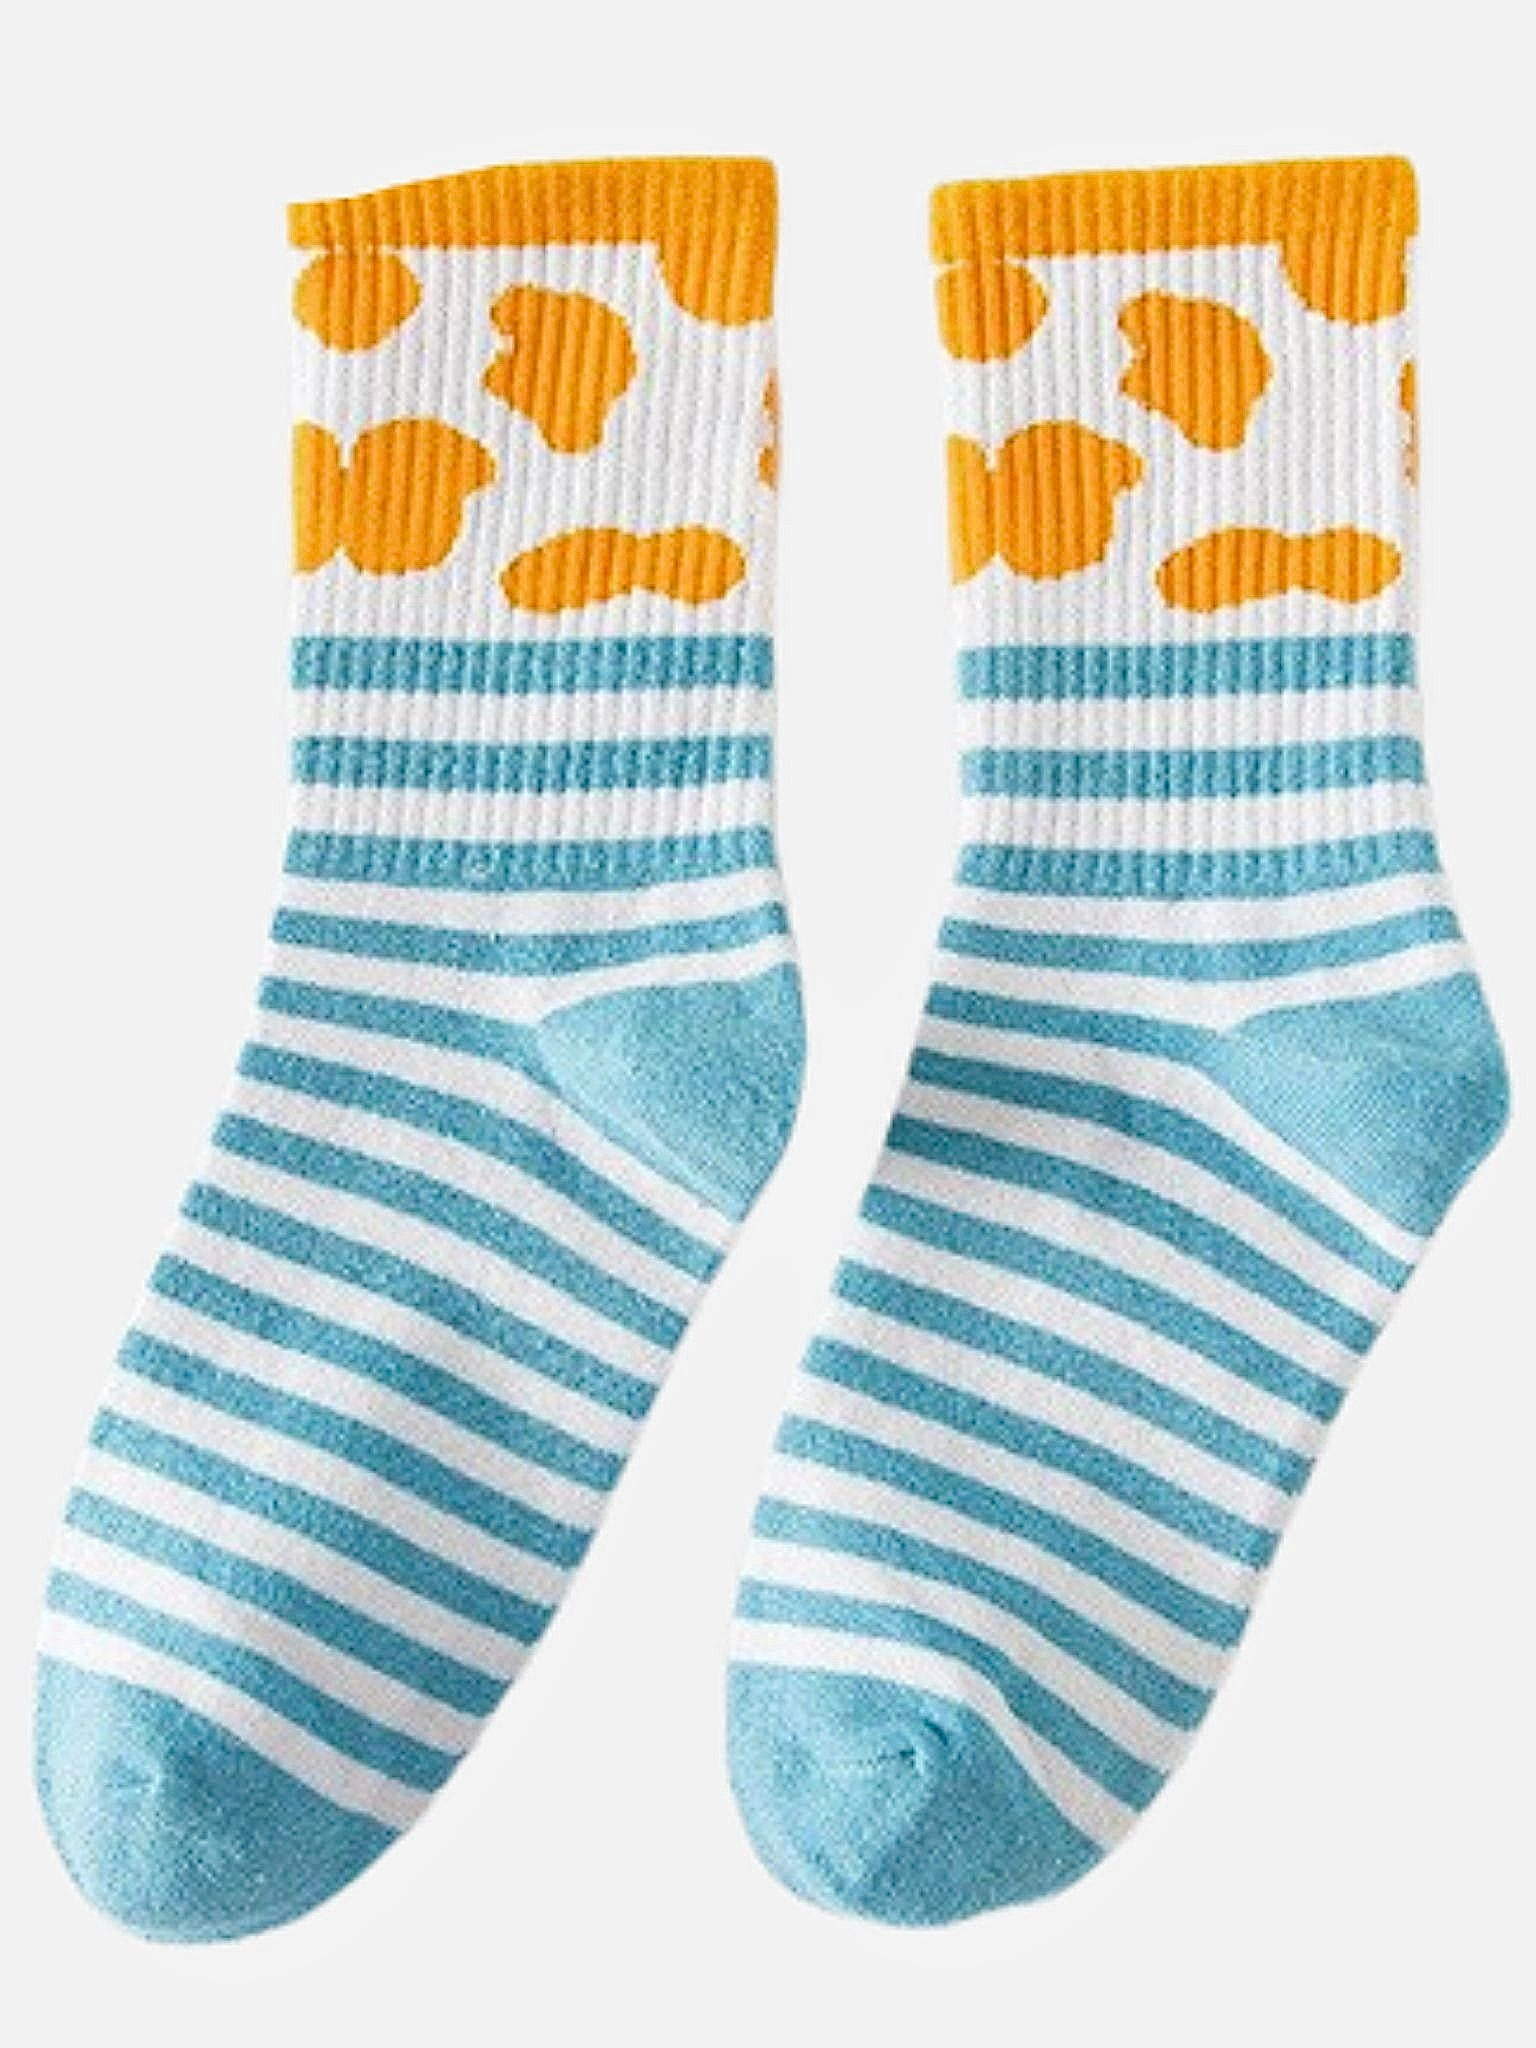 Rib Crew Socks      Cute Ribbed Cotton Light Blue Stripe White Cow Pattern print Street Fashion Cotton Socks footwear Style Trend